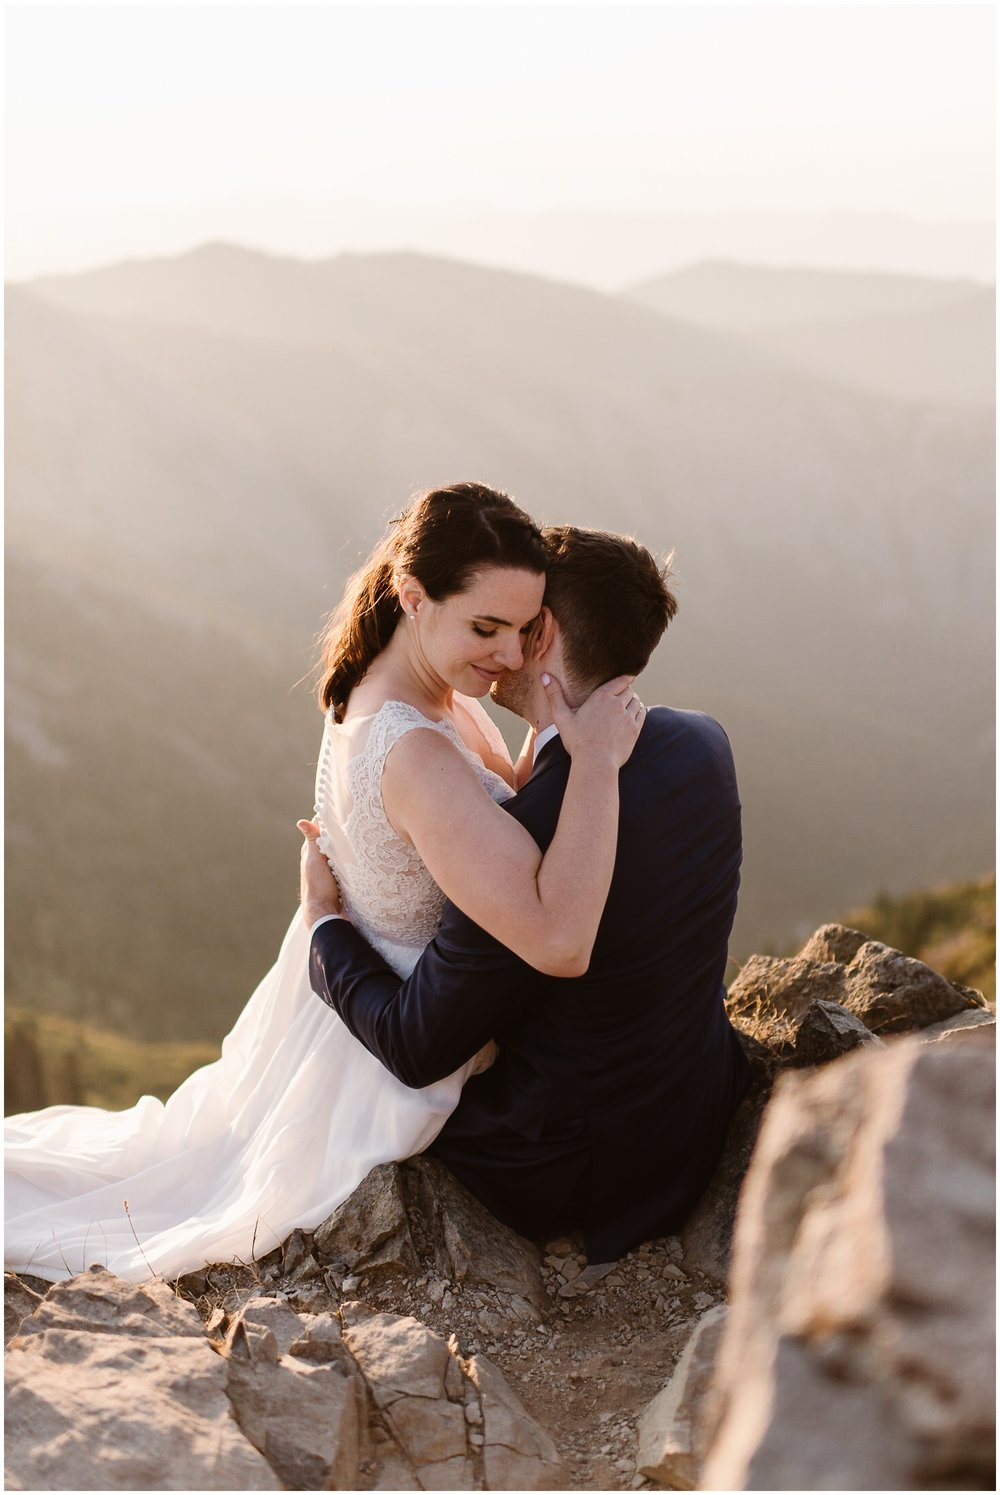 Lauryn and David hold each other close in an embrace during the beautiful, sunrise moments at the top of the mountain in Washington. When they were planning on how to elope in Washington State, they knew they wanted to include a sunrise hike for this reason.